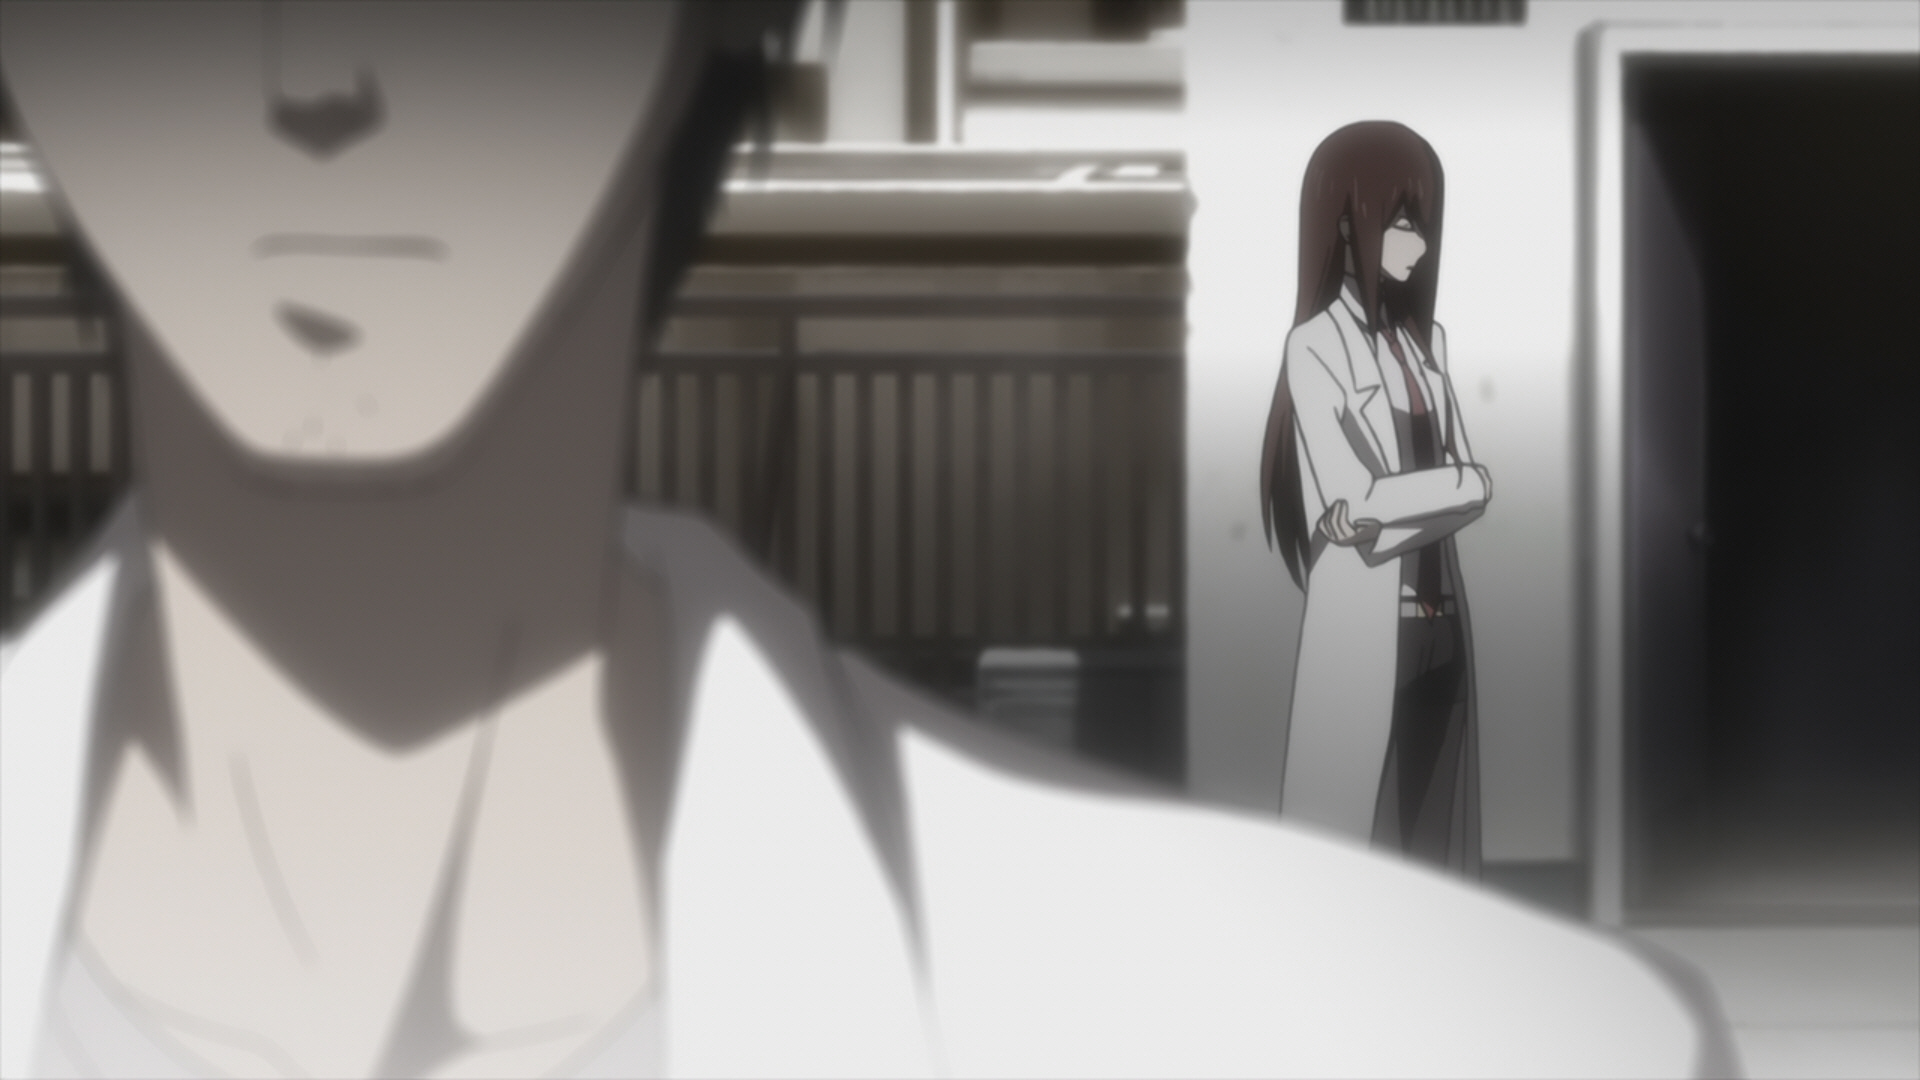 Steins;Gate Episode 5 020